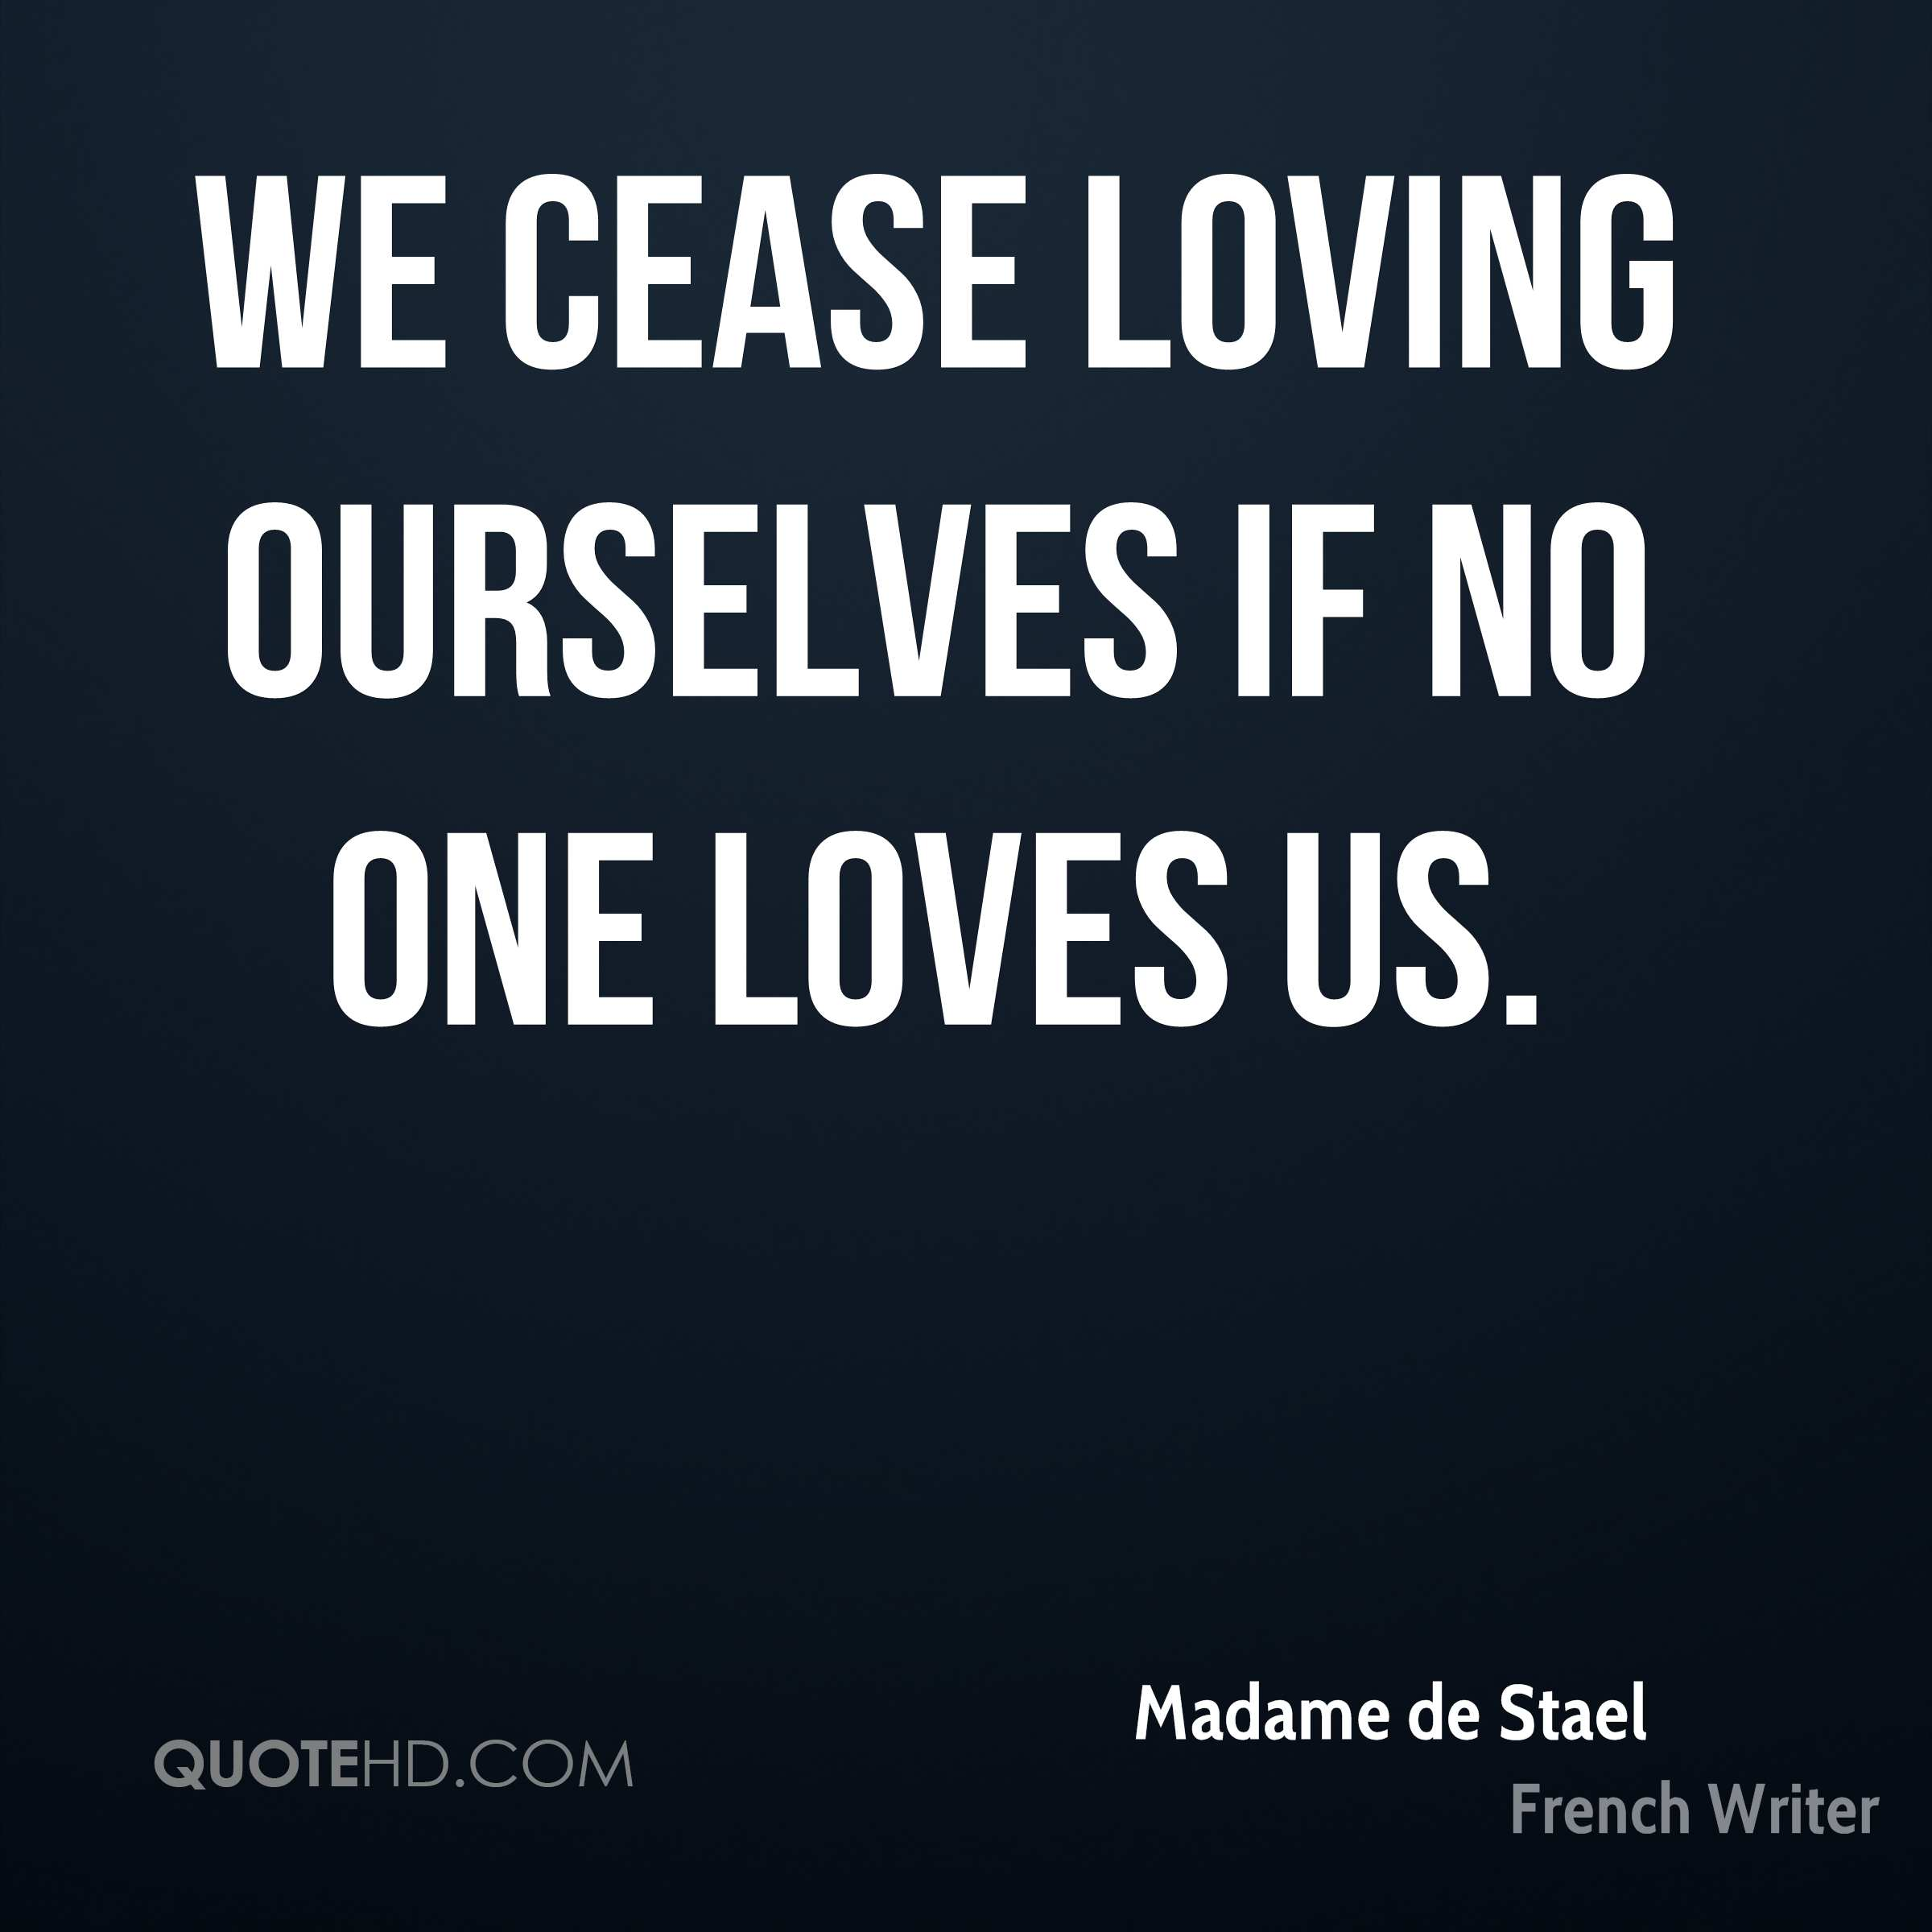 We cease loving ourselves if no one loves us.